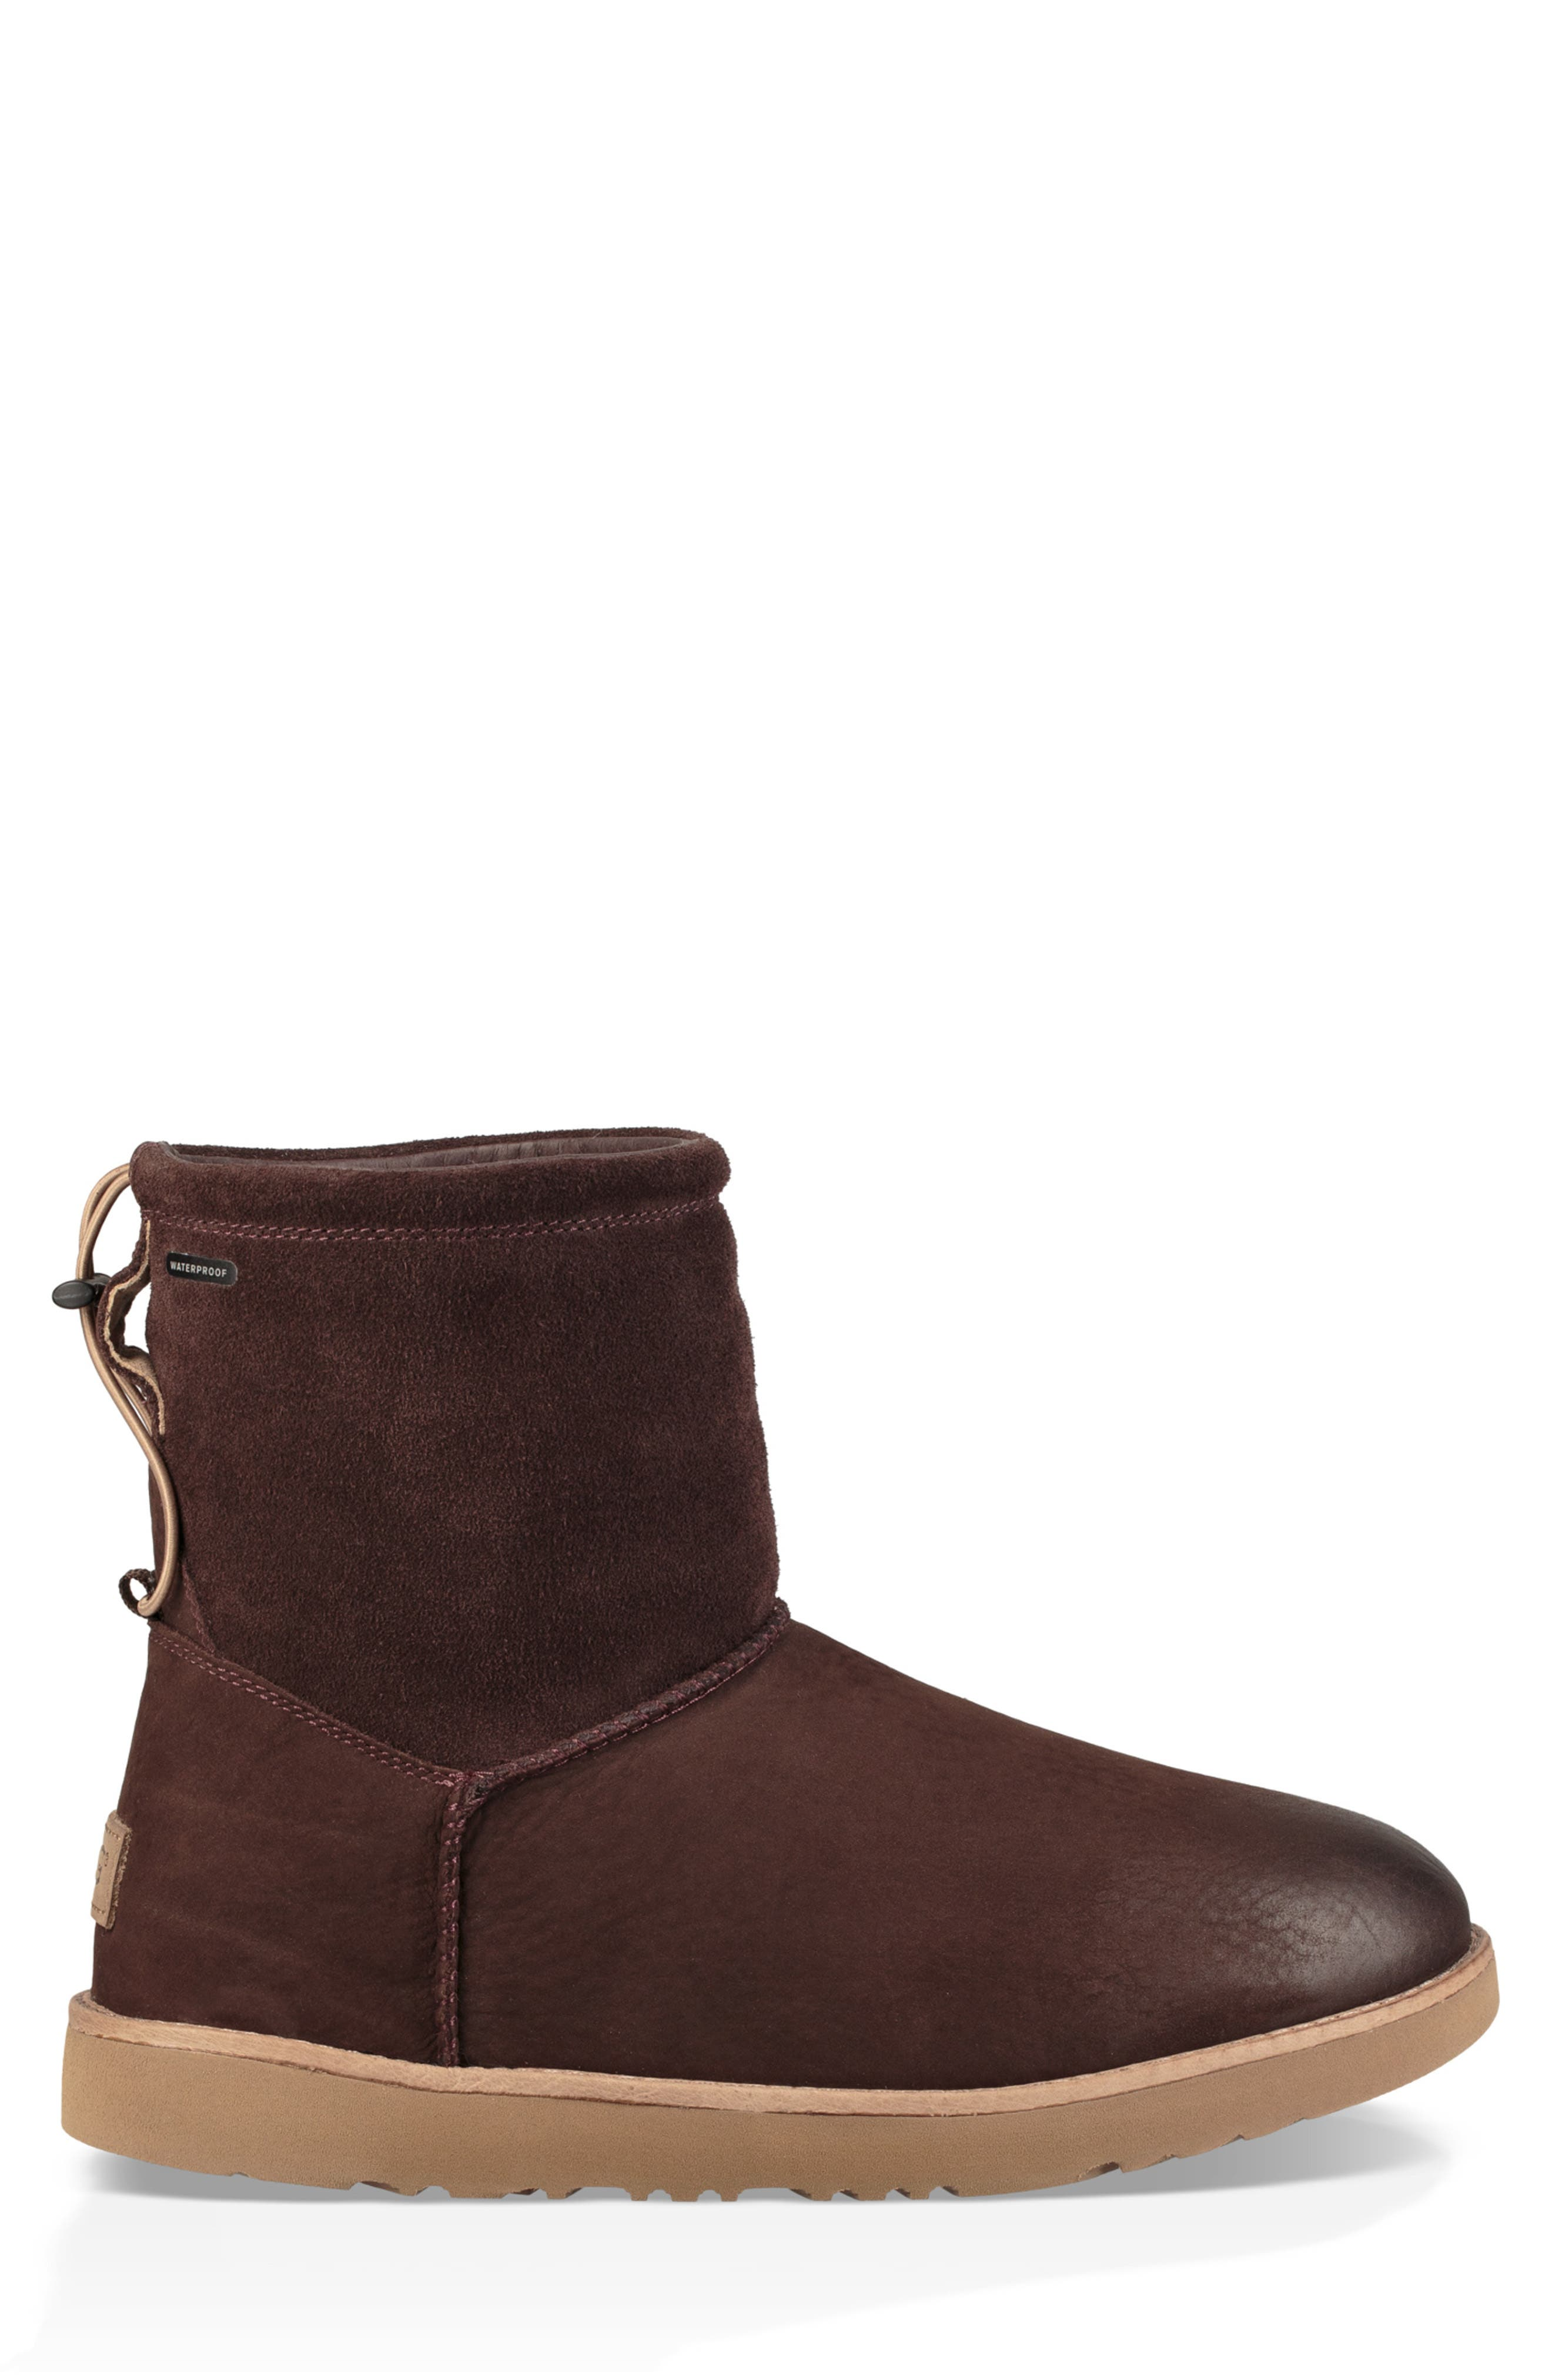 UGG<SUP>®</SUP>, Classic Waterproof Boot, Alternate thumbnail 3, color, STOUT